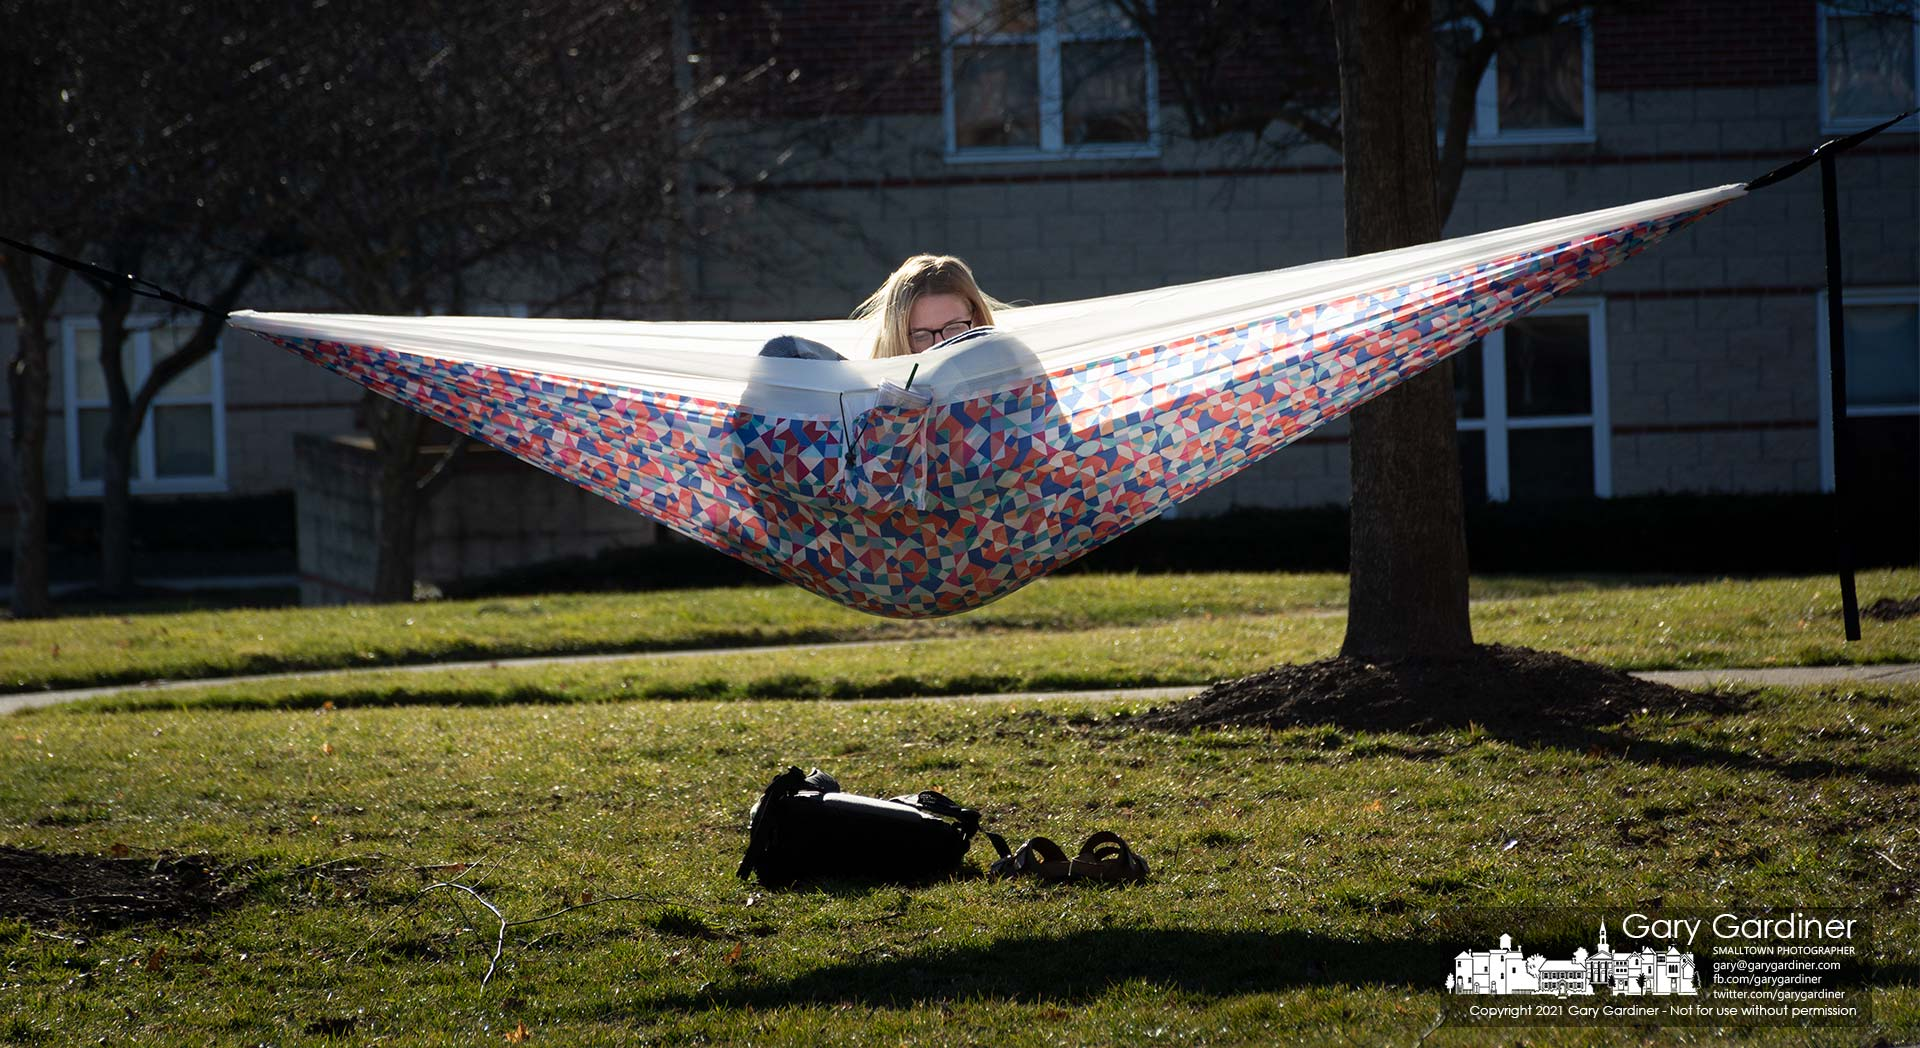 An Otterbein student reads in a hammock with her back warmed by the afternoon sun on the grassy plaza behind Towers hall. My Final Photo for March 6, 2021.